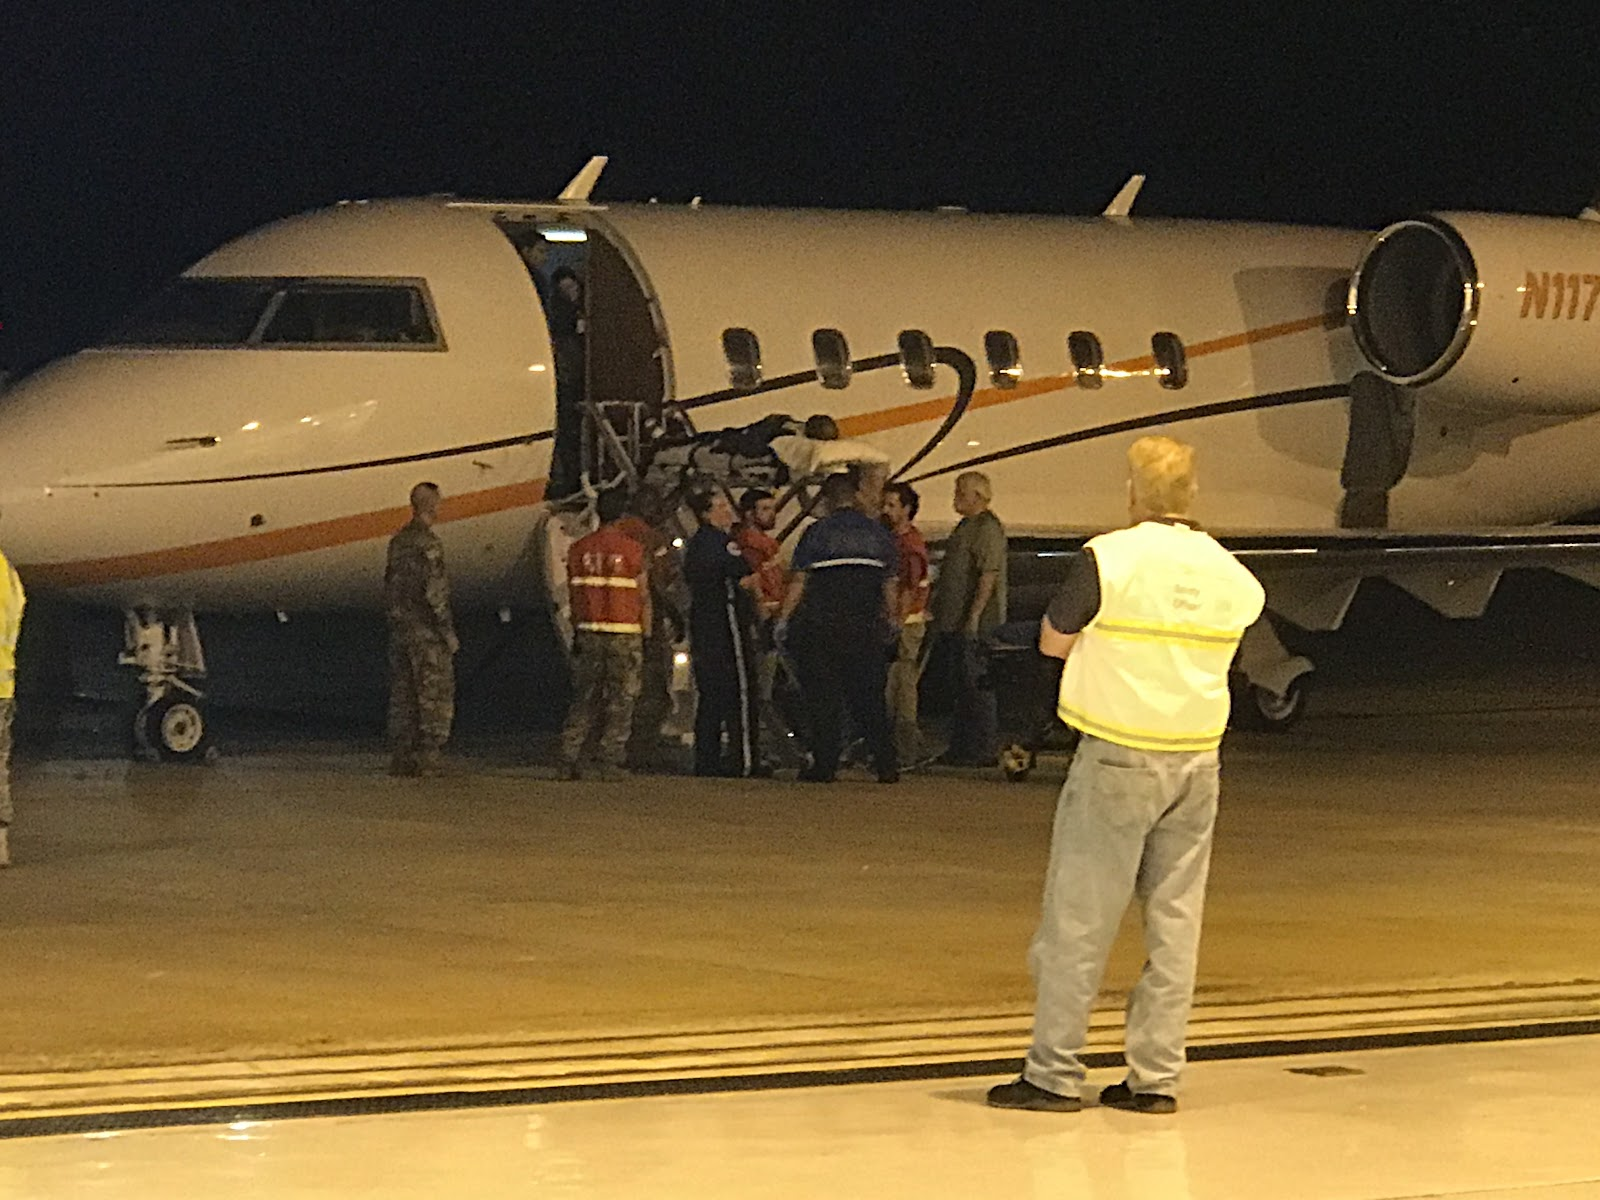 Patient coming off plane